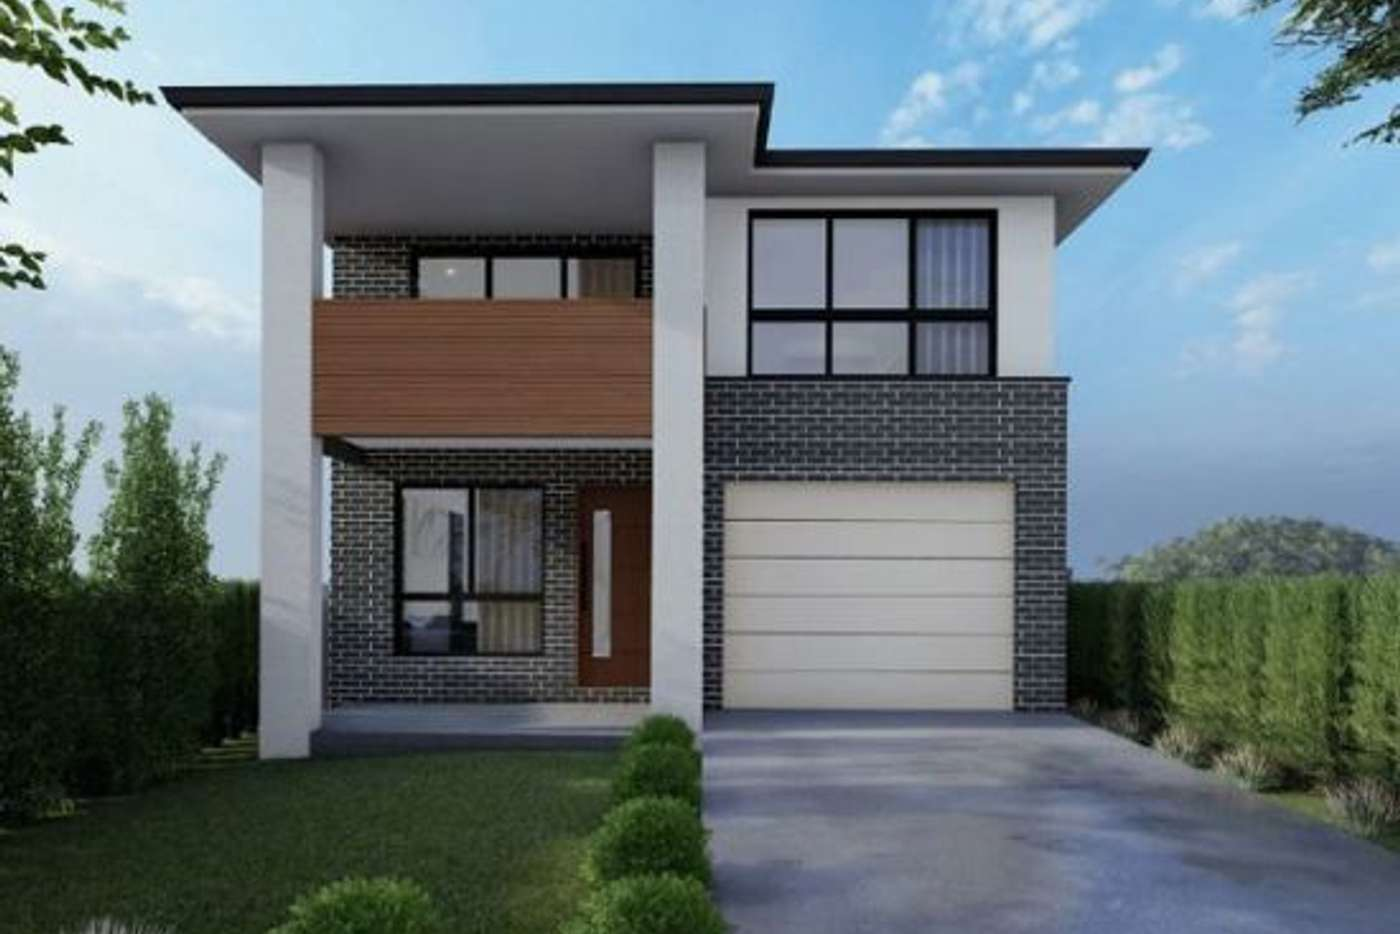 Main view of Homely house listing, 14 27 Karachi Street, Riverstone NSW 2765